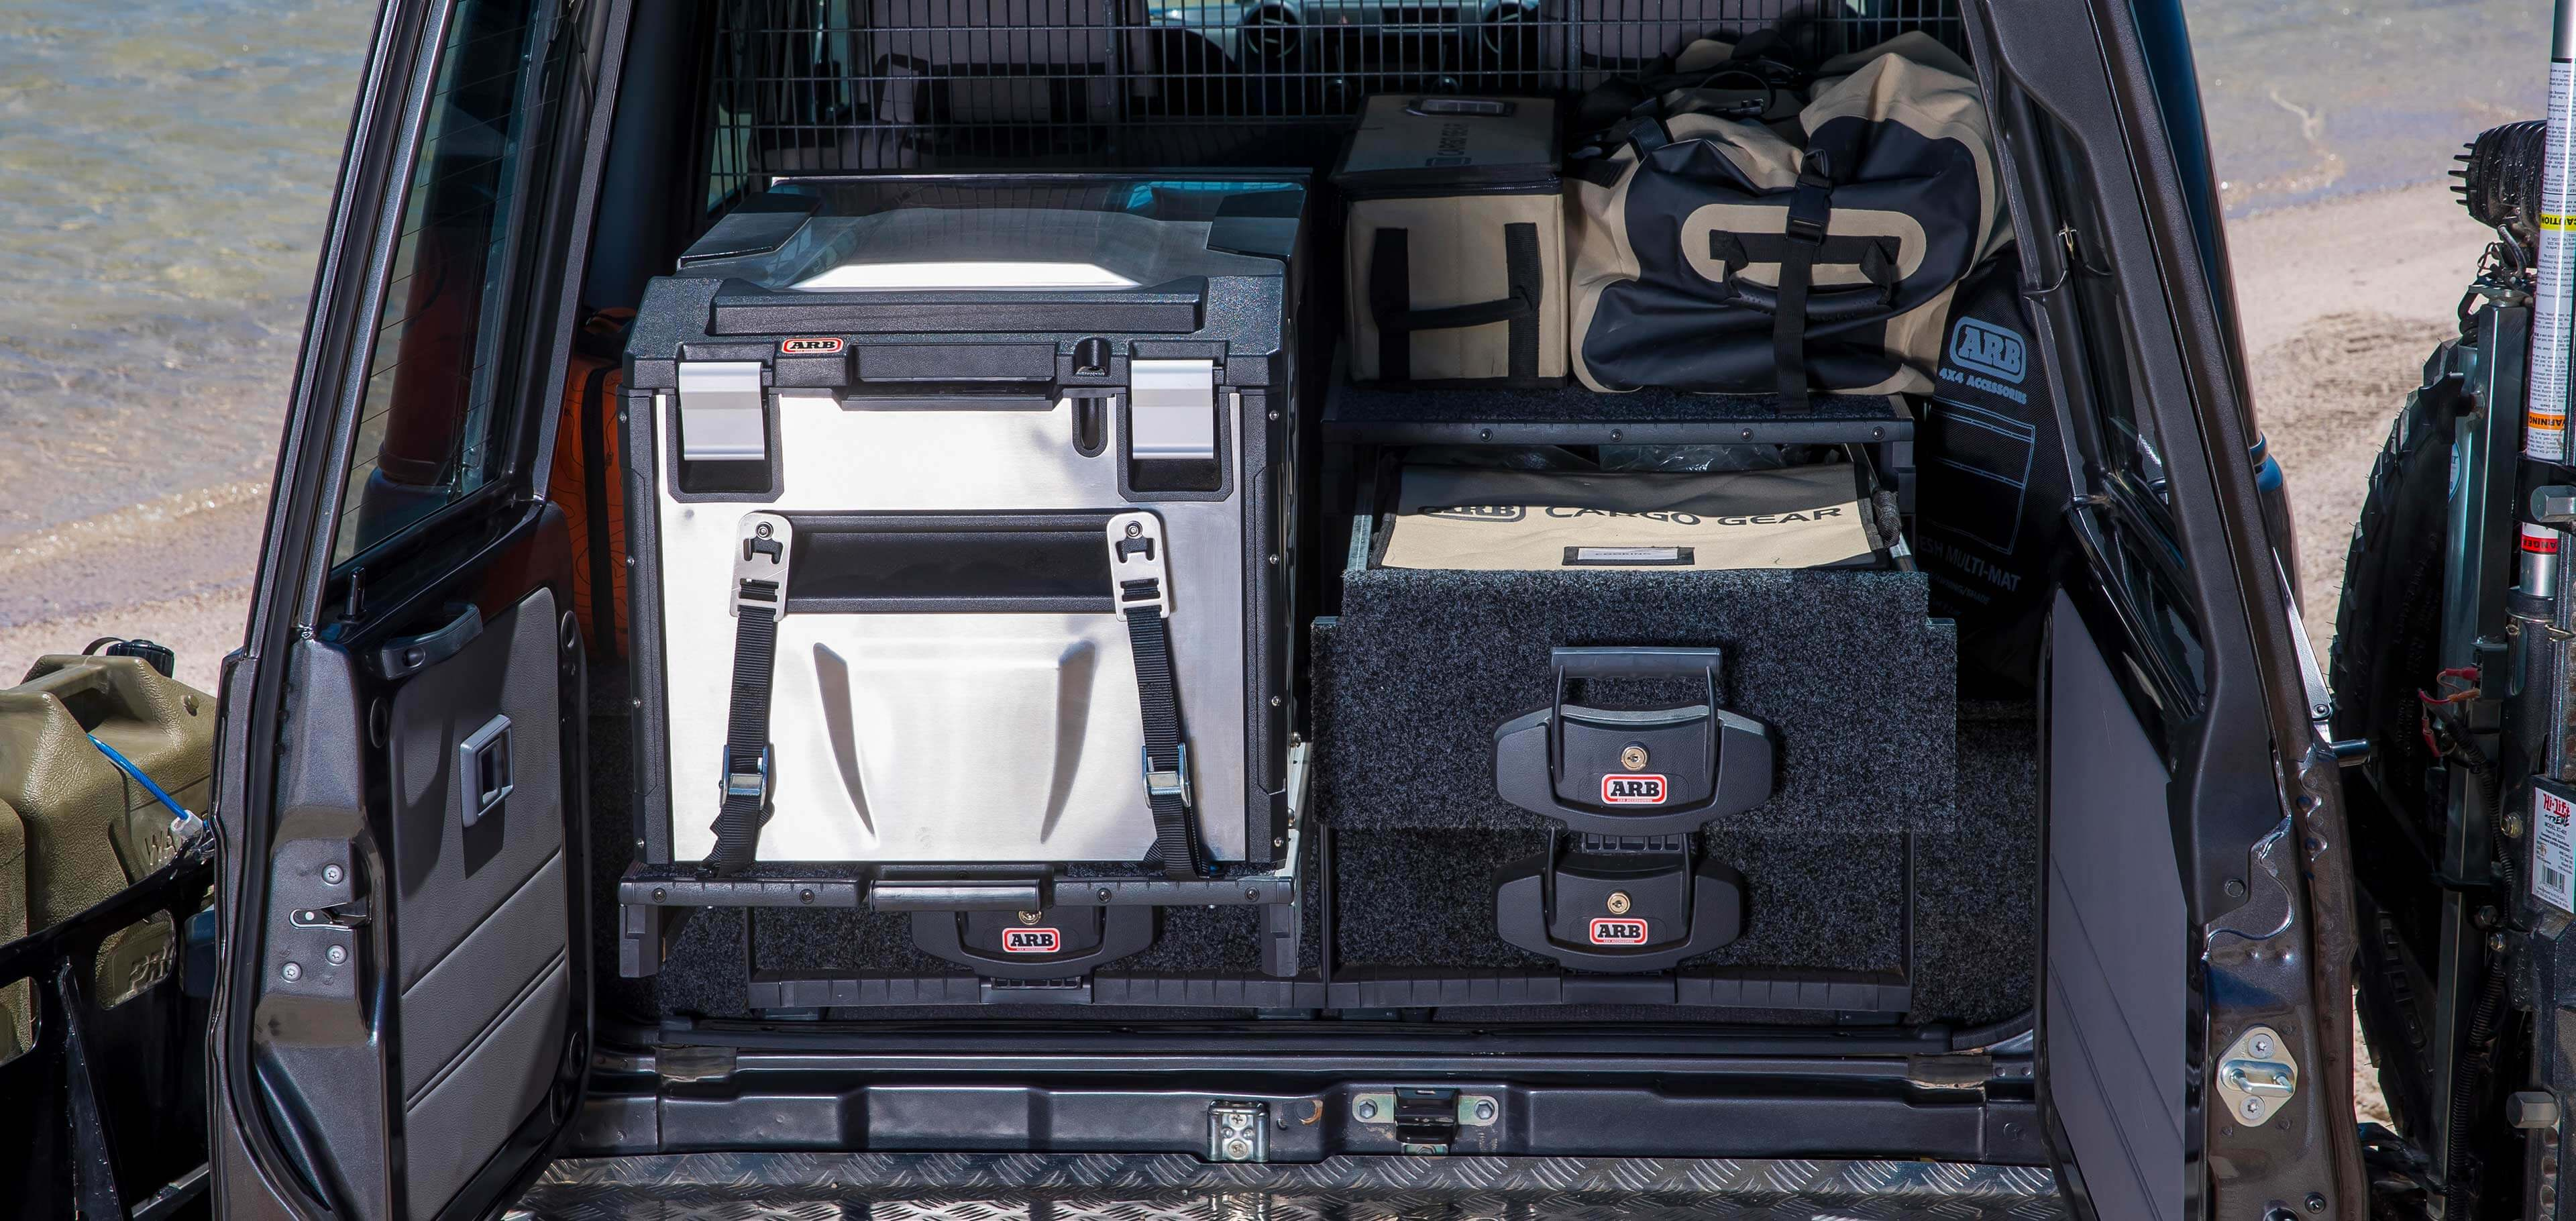 Arb 4 215 4 Accessories Drawers Amp Cargo Solutions Arb 4x4